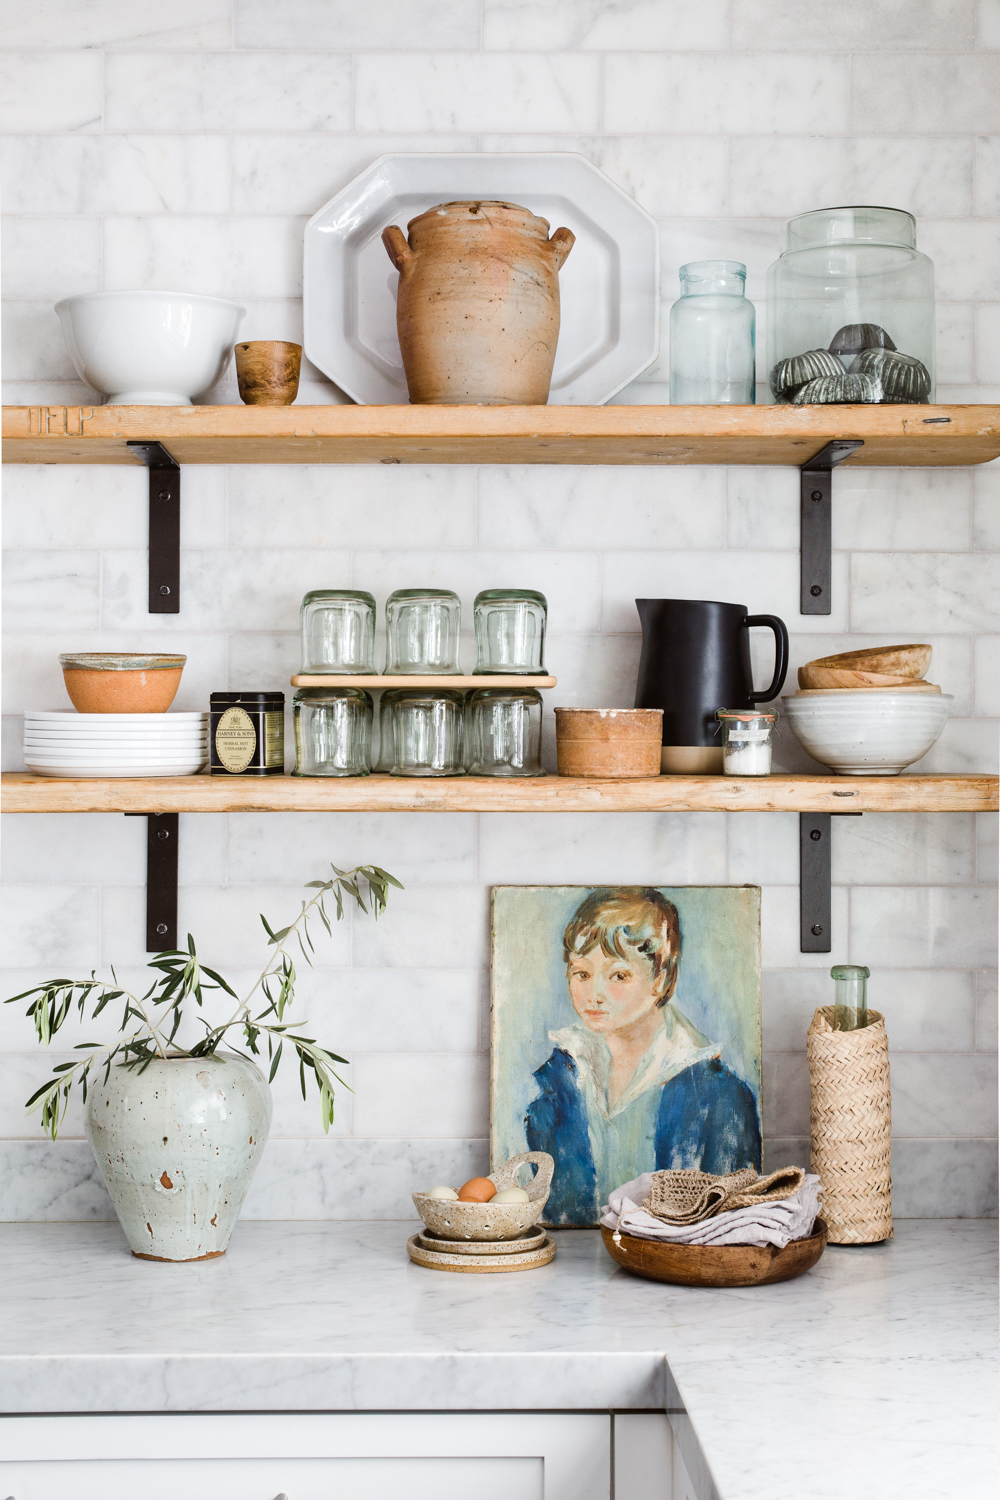 Heather Bullard | Shelf Styling Guide